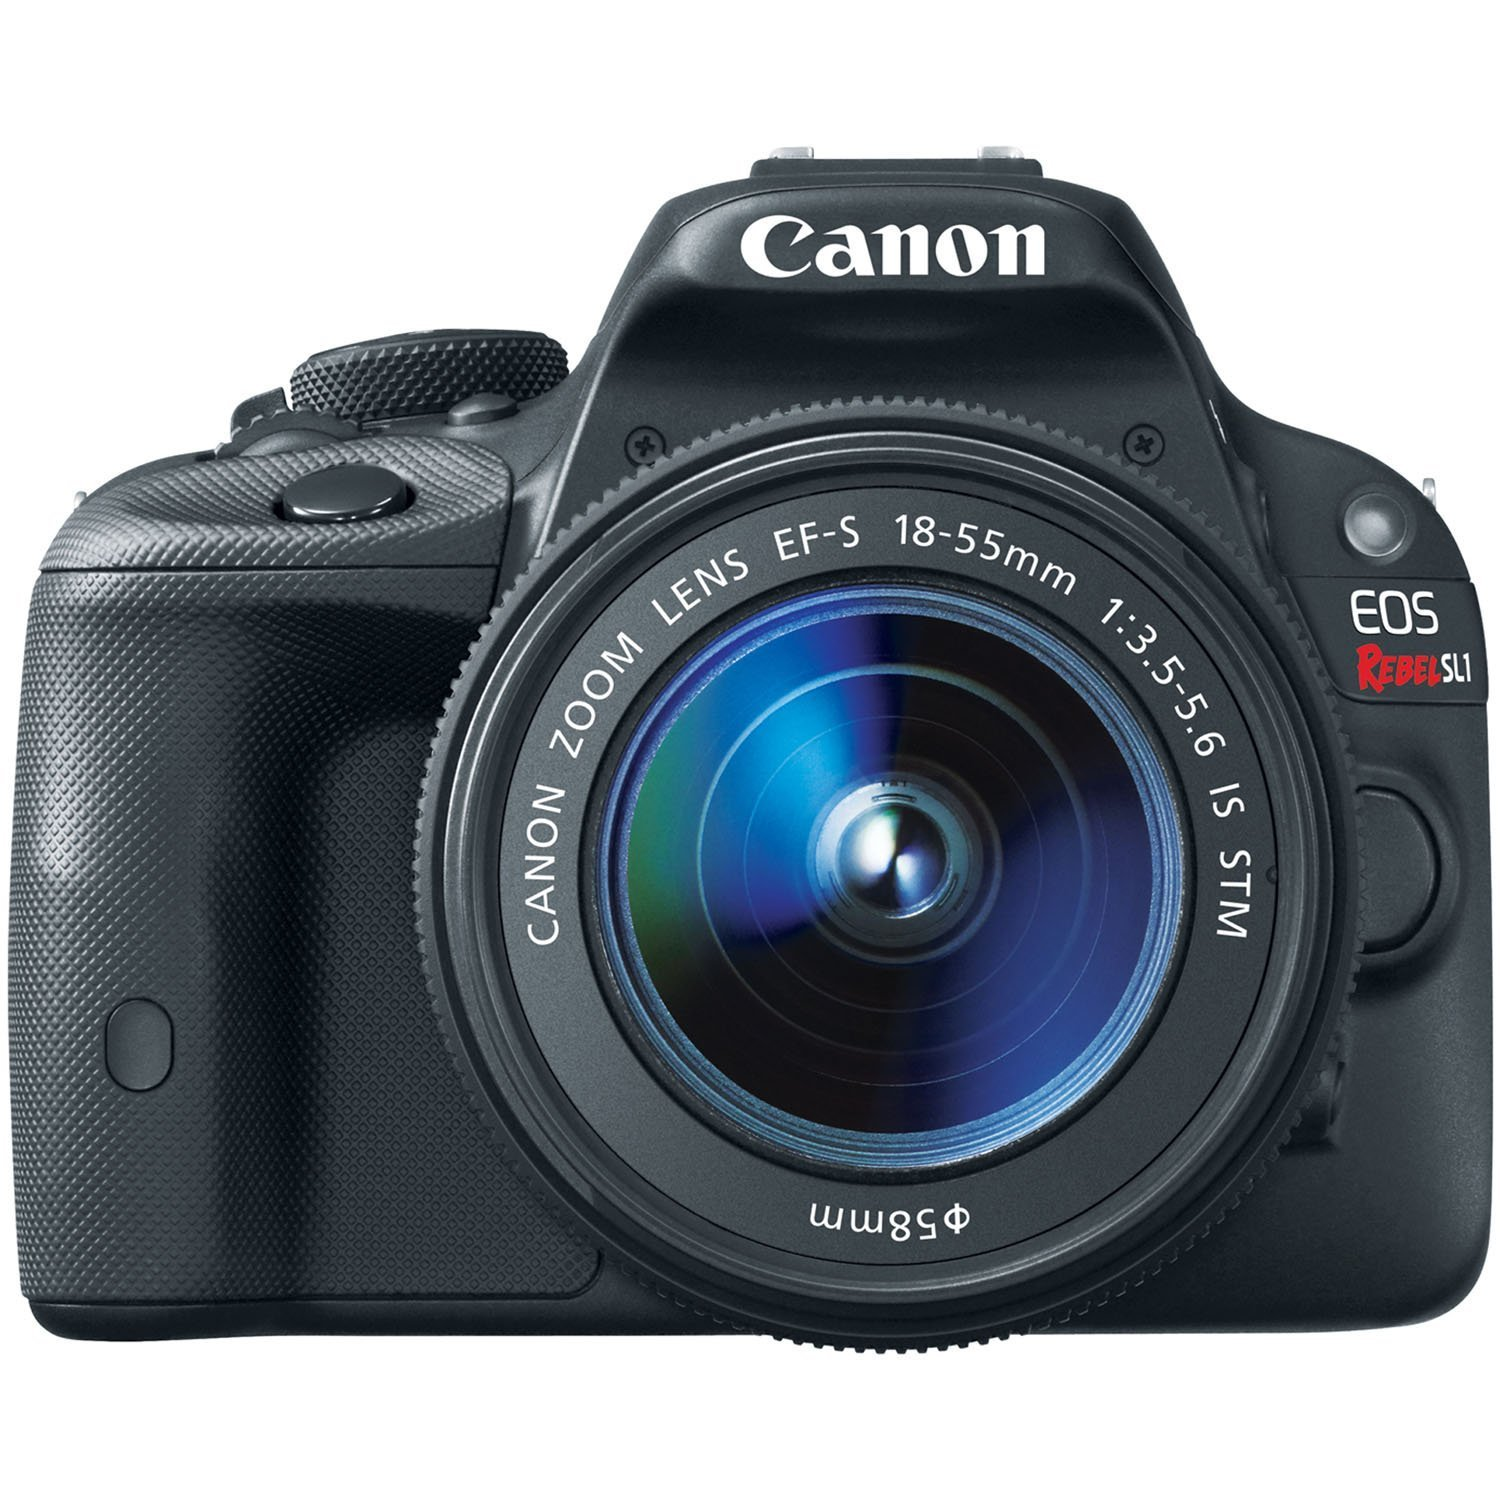 Canon EOS Rebel SL1 Digital SLR with 18-55mm STM Lens (Certified Refurbished)